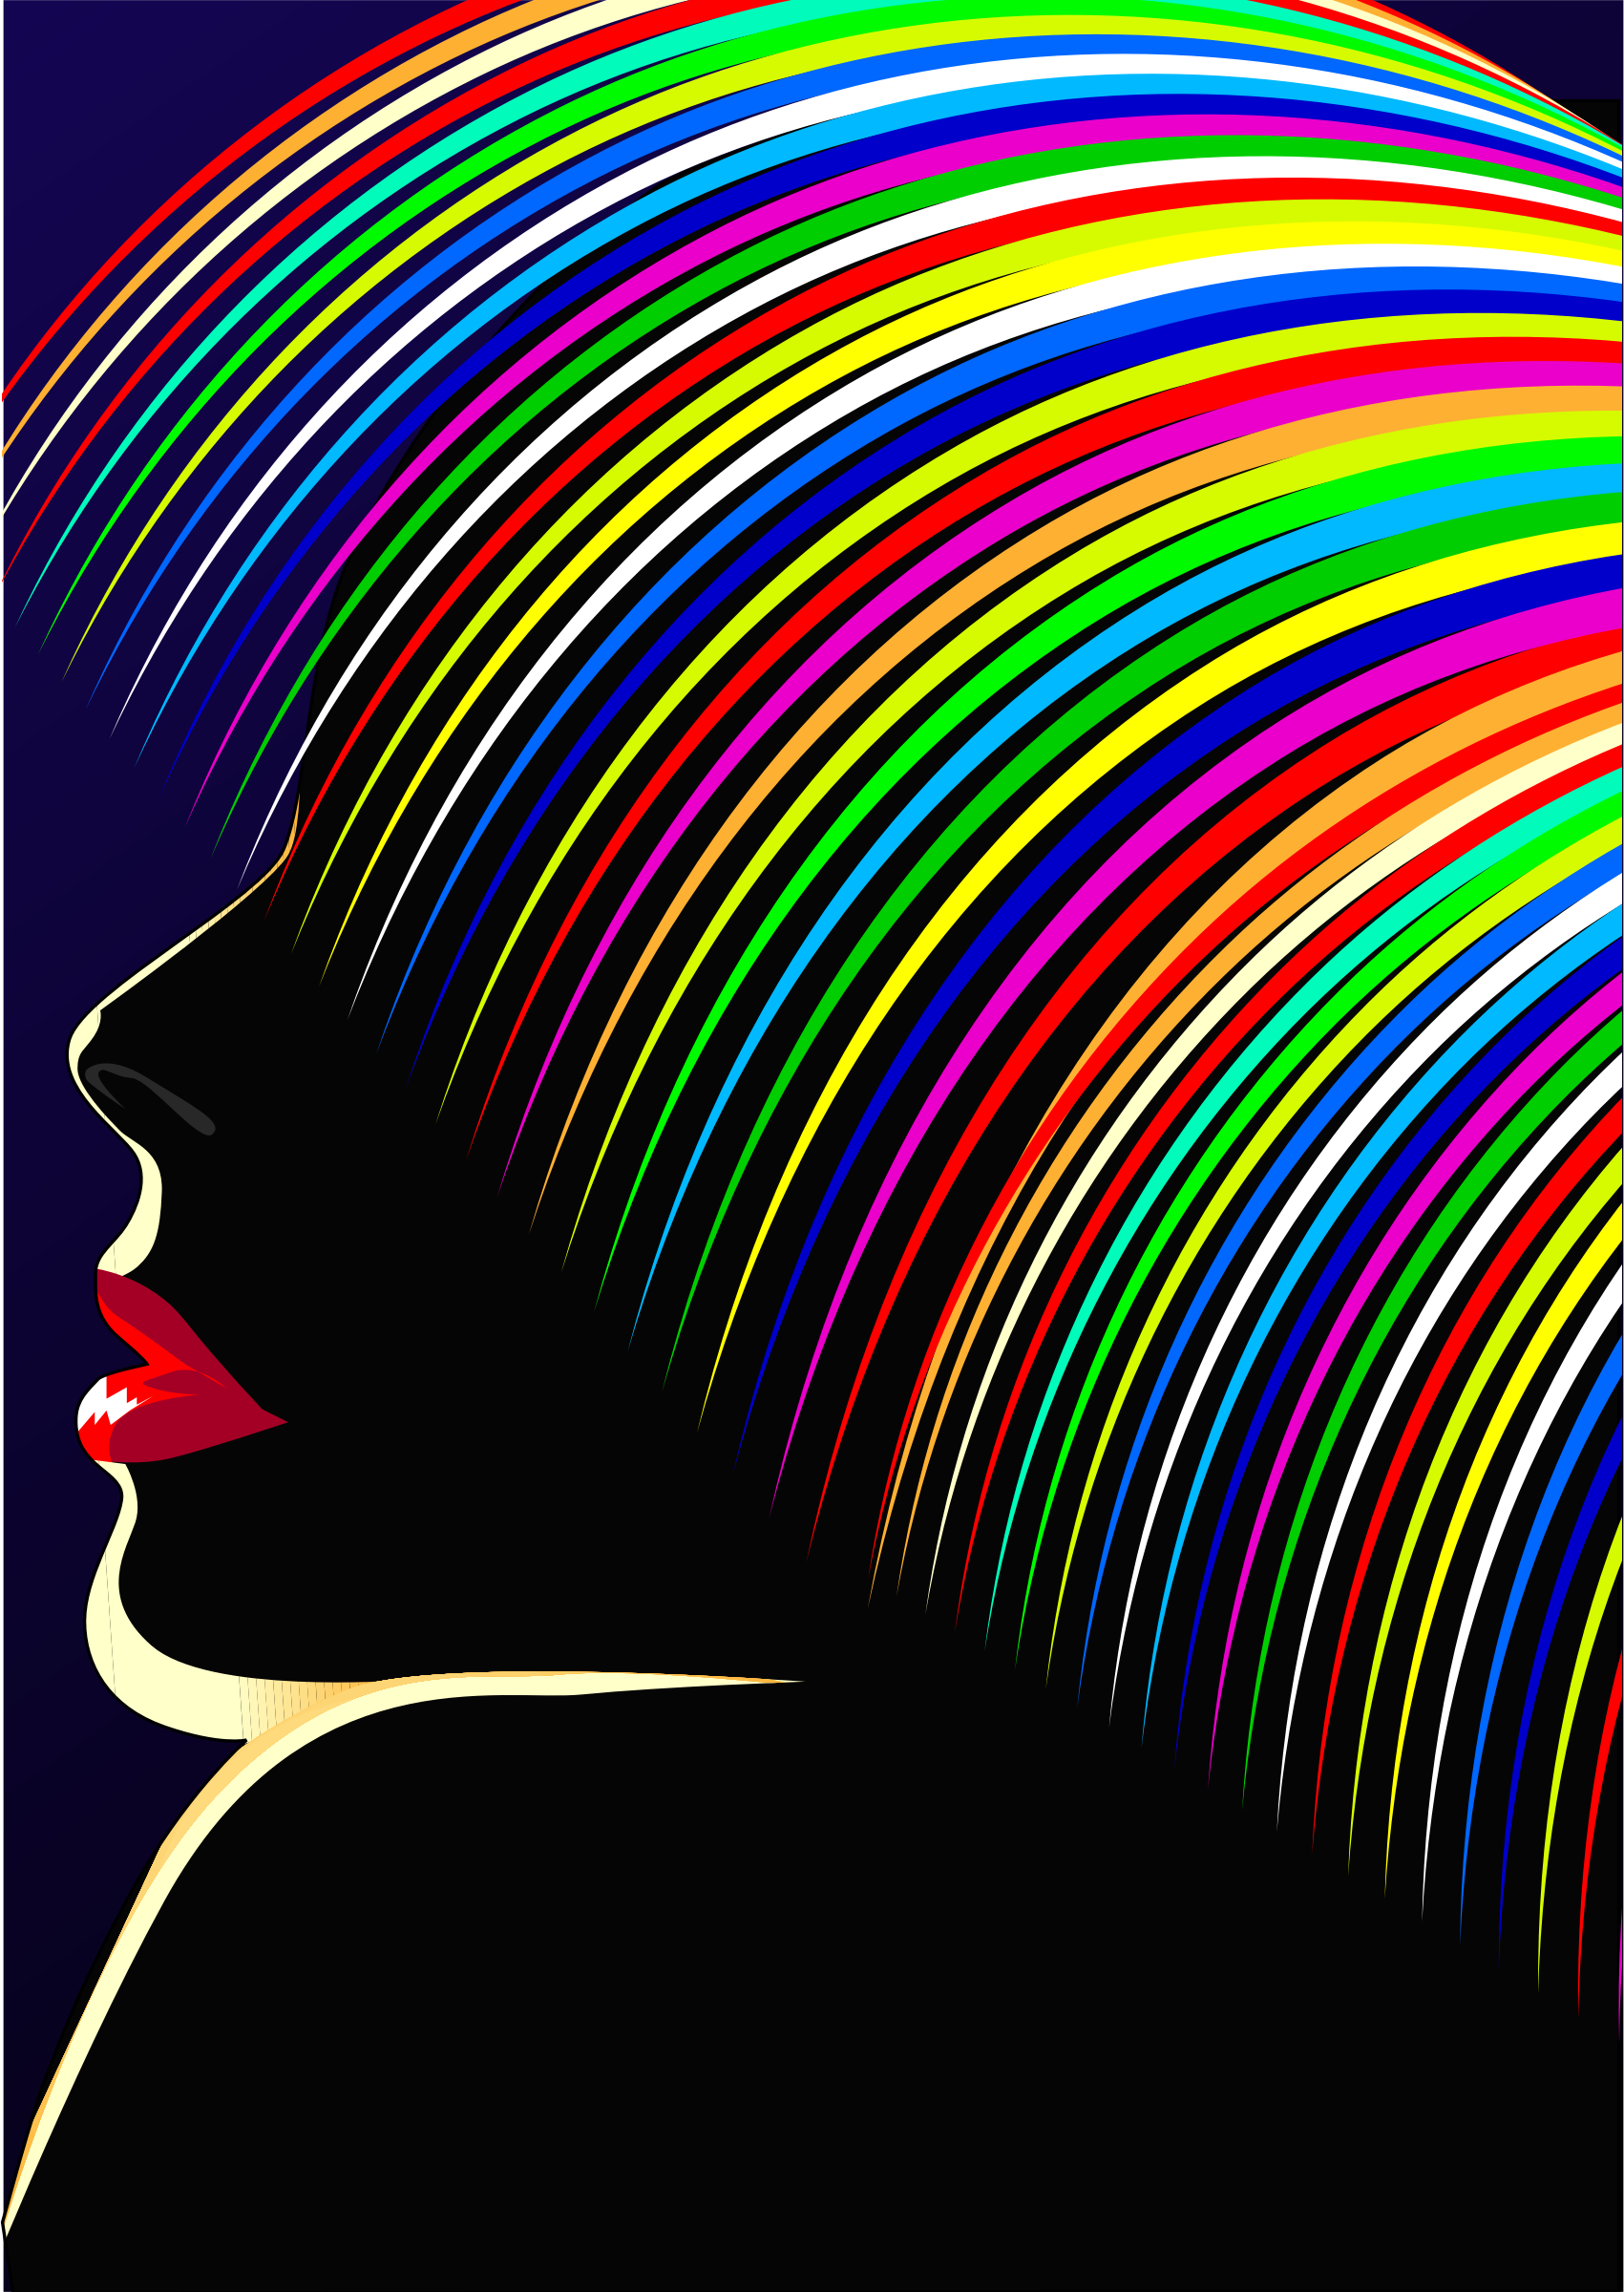 Rainbow Hair Woman Silhouette by GDJ